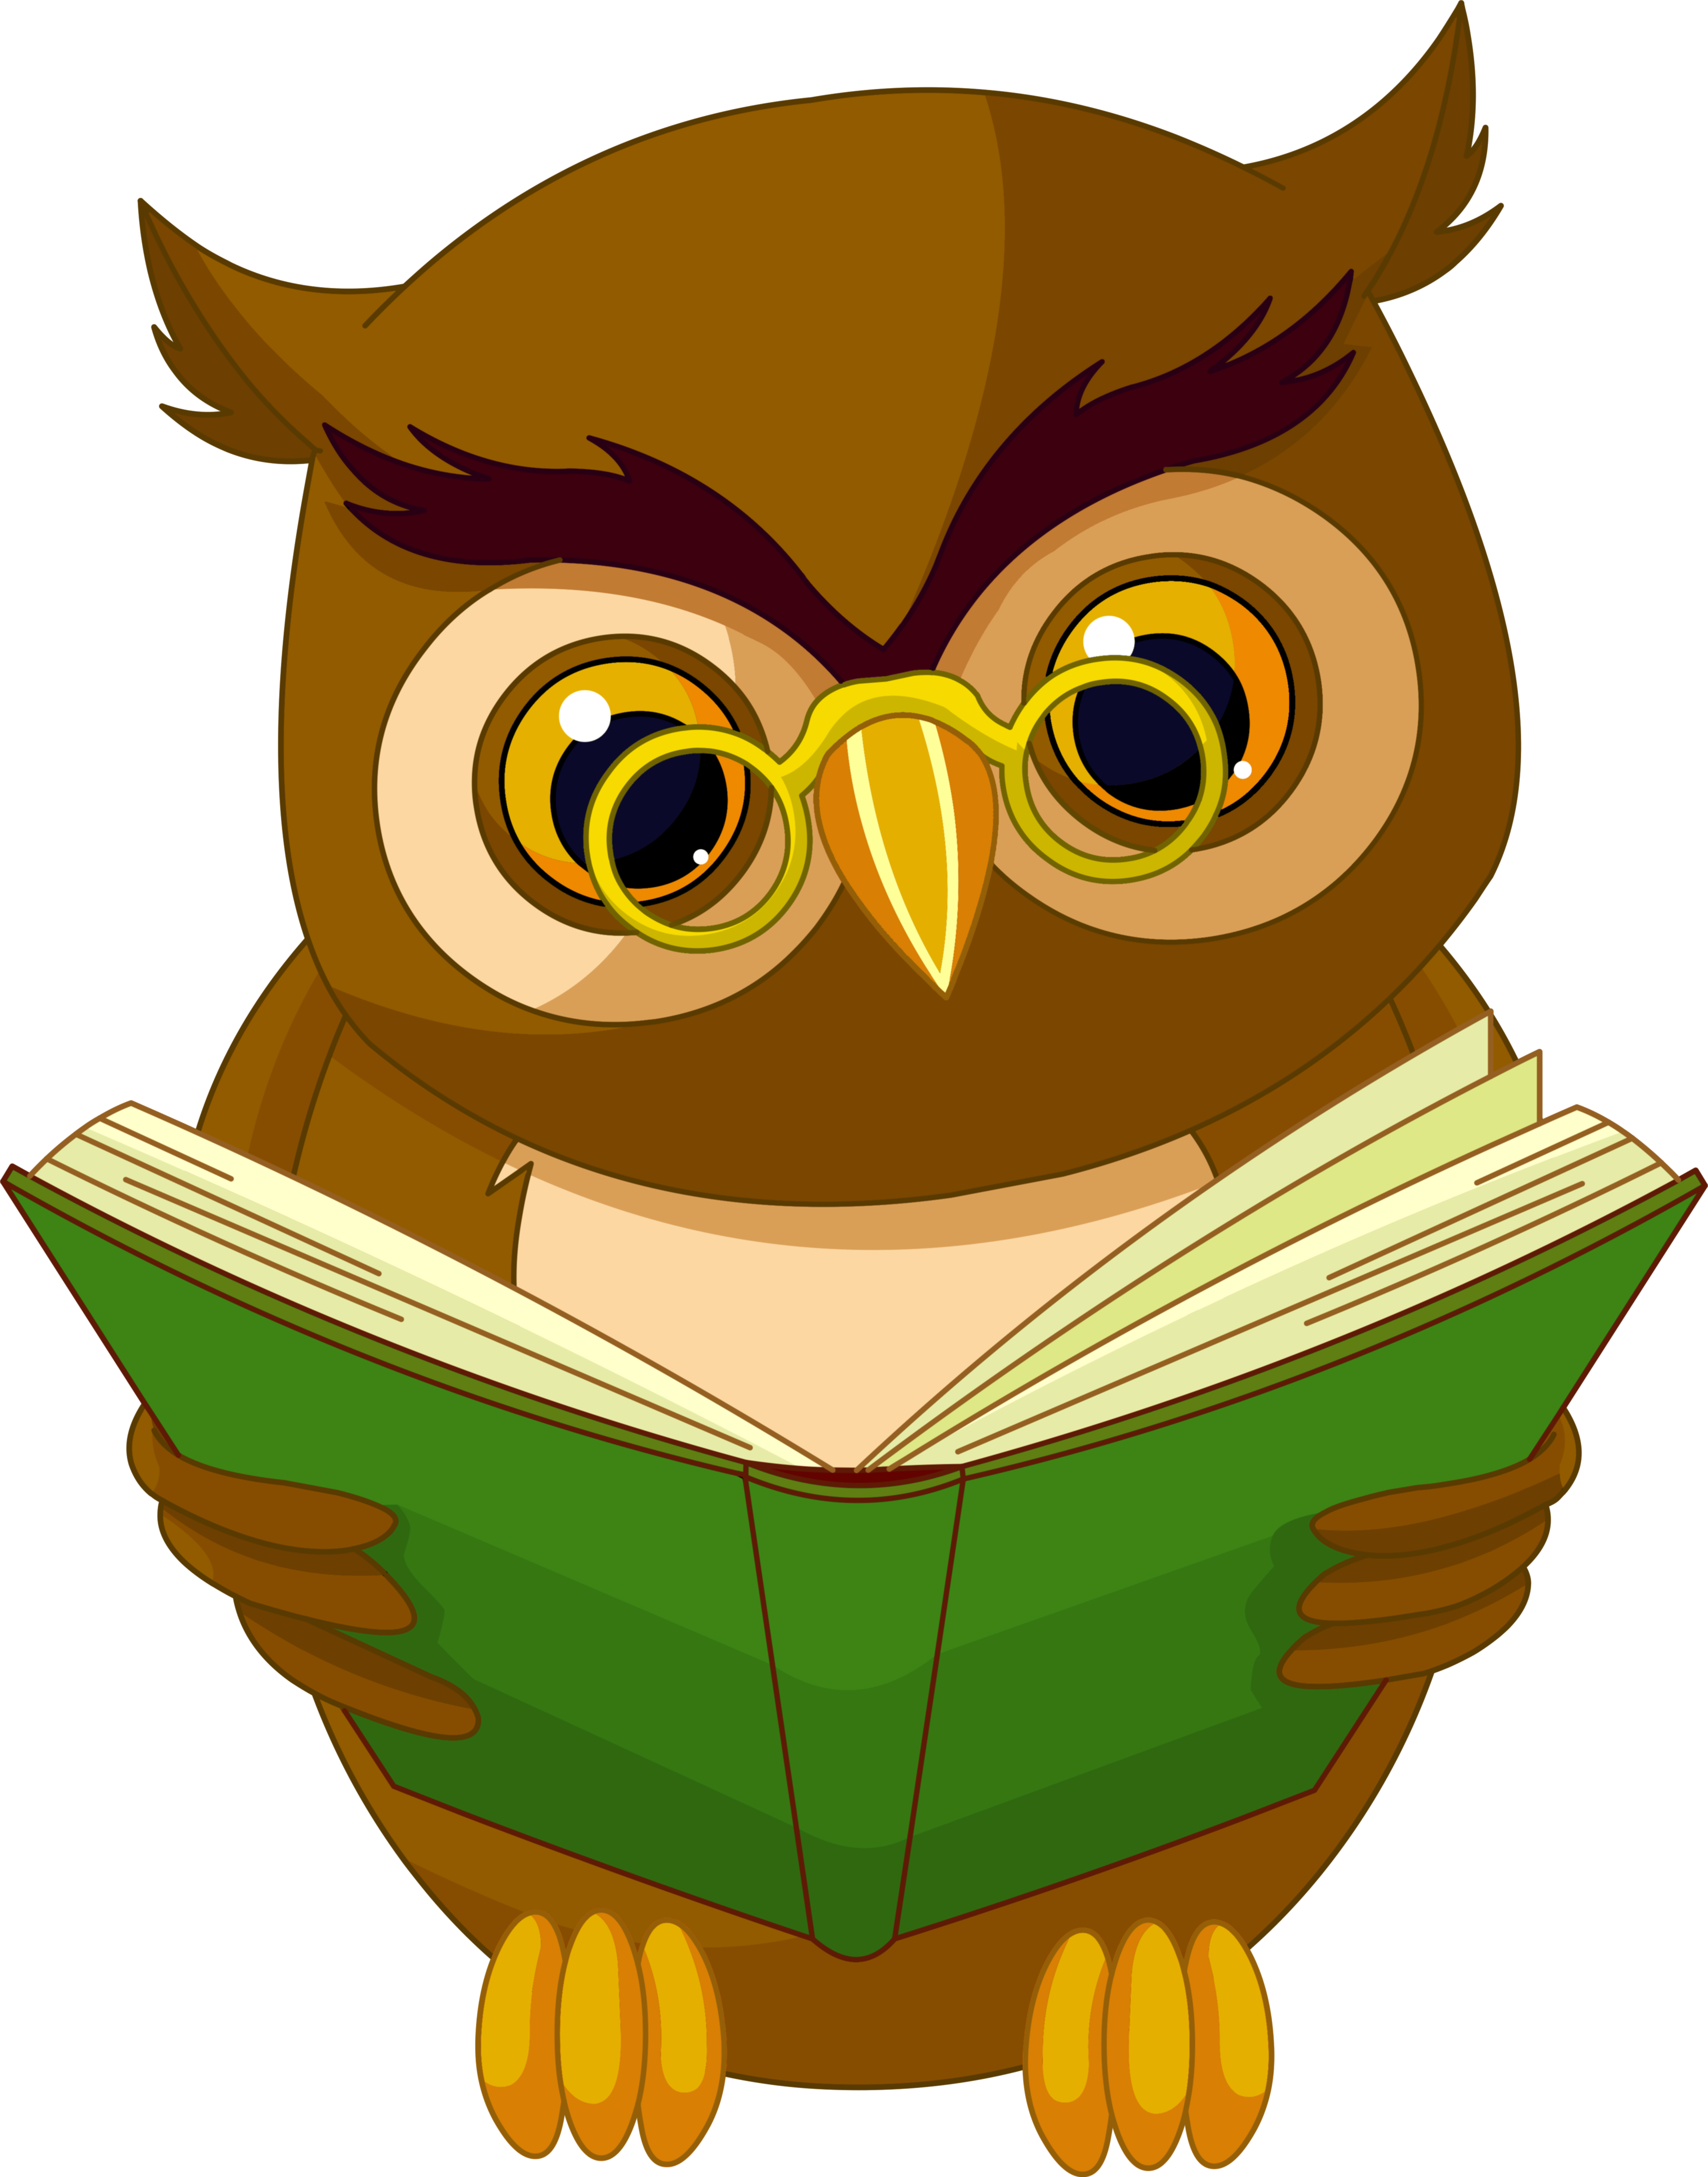 Transparent with book png. Owl clip art clear background banner library library